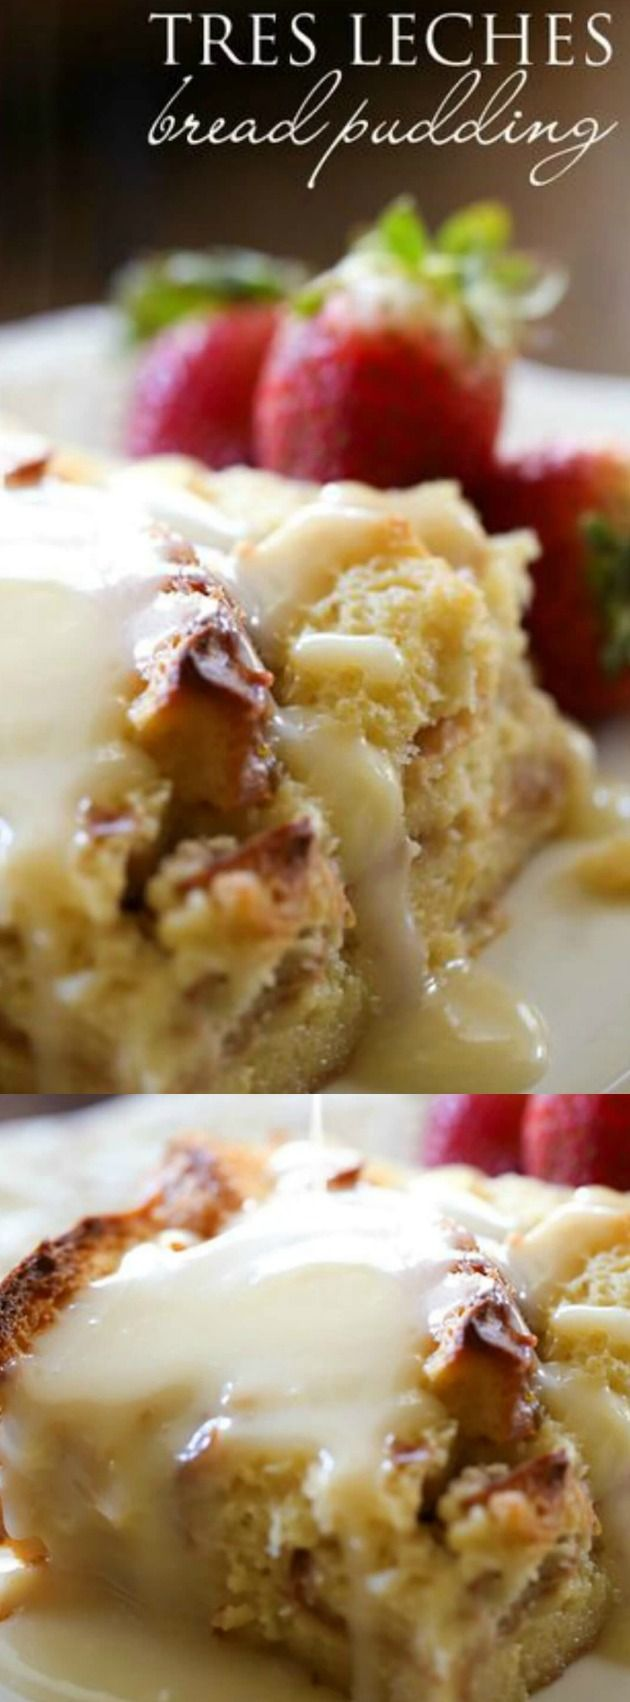 This Tres Leches Bread Pudding with Vanilla Cream Sauce from Chef in Training makes the perfect holiday breakfast that will WOW your family! It is an easy and simple recipe but tastes so fancy and special.  The flavor of this Tres Leches Bread Pudding is seriously so amazing!